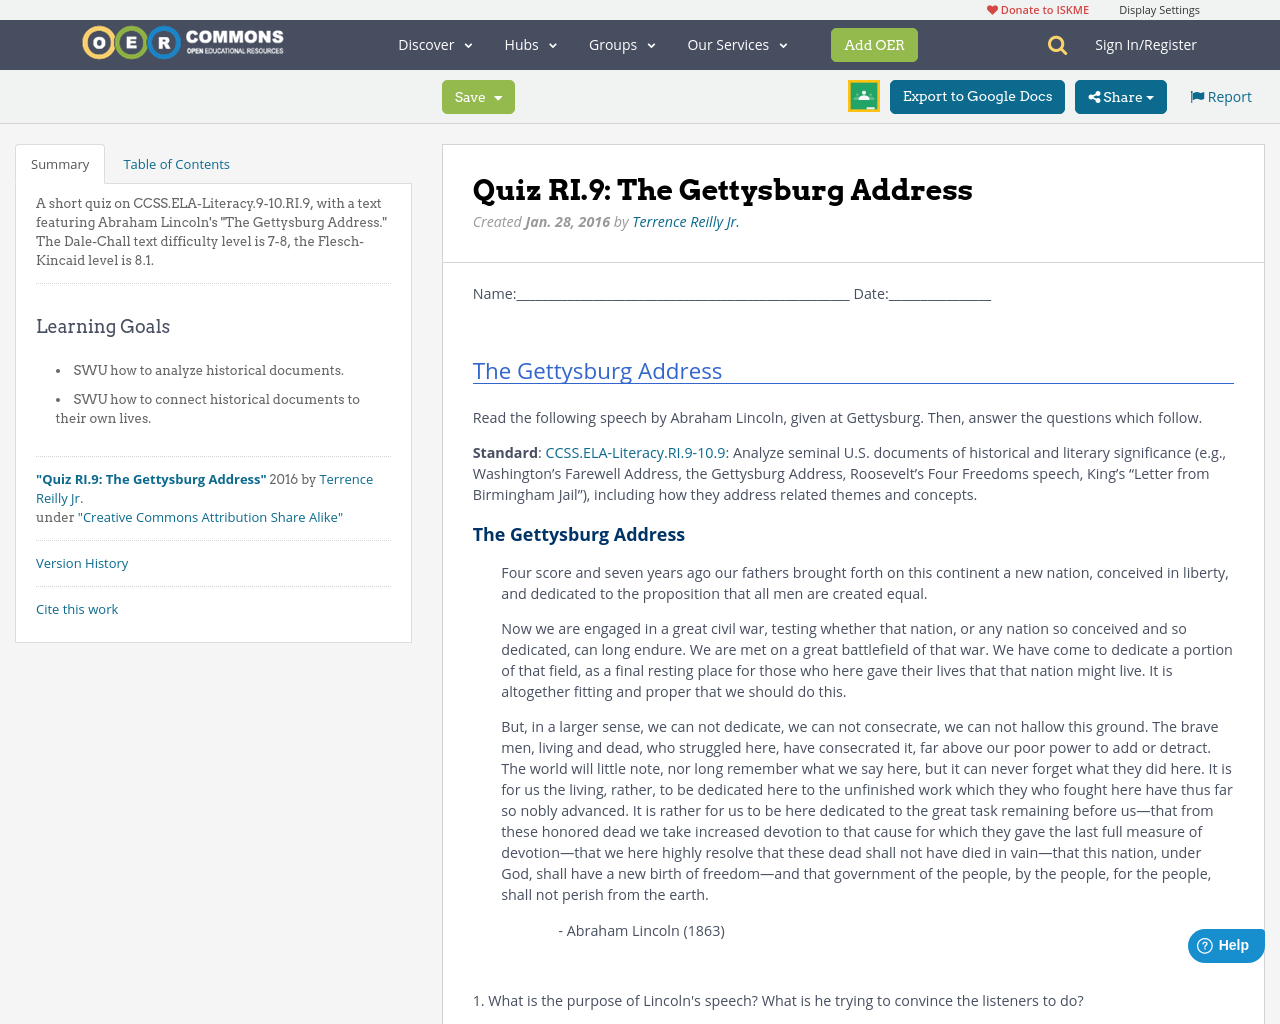 an analysis of the different opinions regarding gettysburg This lesson discusses the gettysburg address, one of the most famous speeches in american history learn more about what abraham lincoln's speech means and test your knowledge with a quiz.